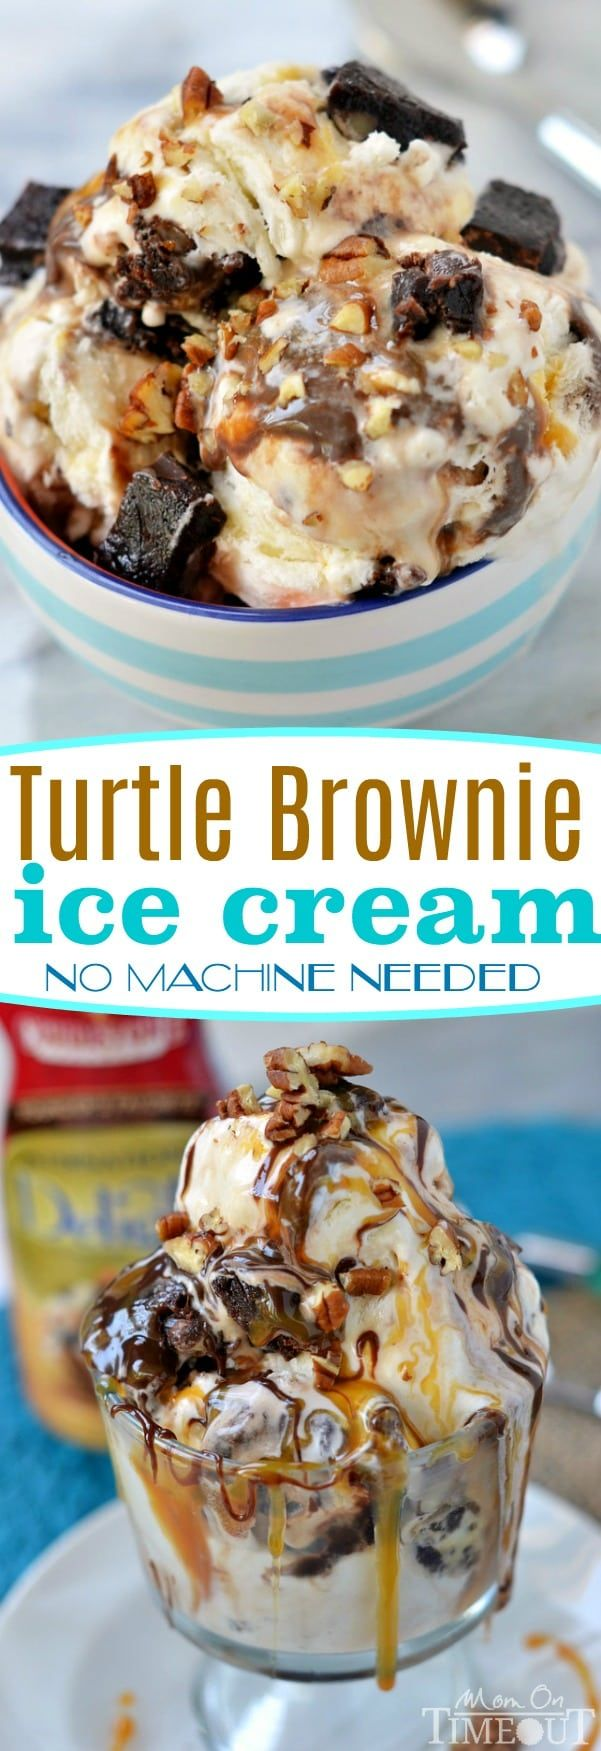 Satisfy those chocolate cravings and beat the heat with this totally decadent Turtle Brownie Ice Cream - no machine needed! // Mom On Timeout